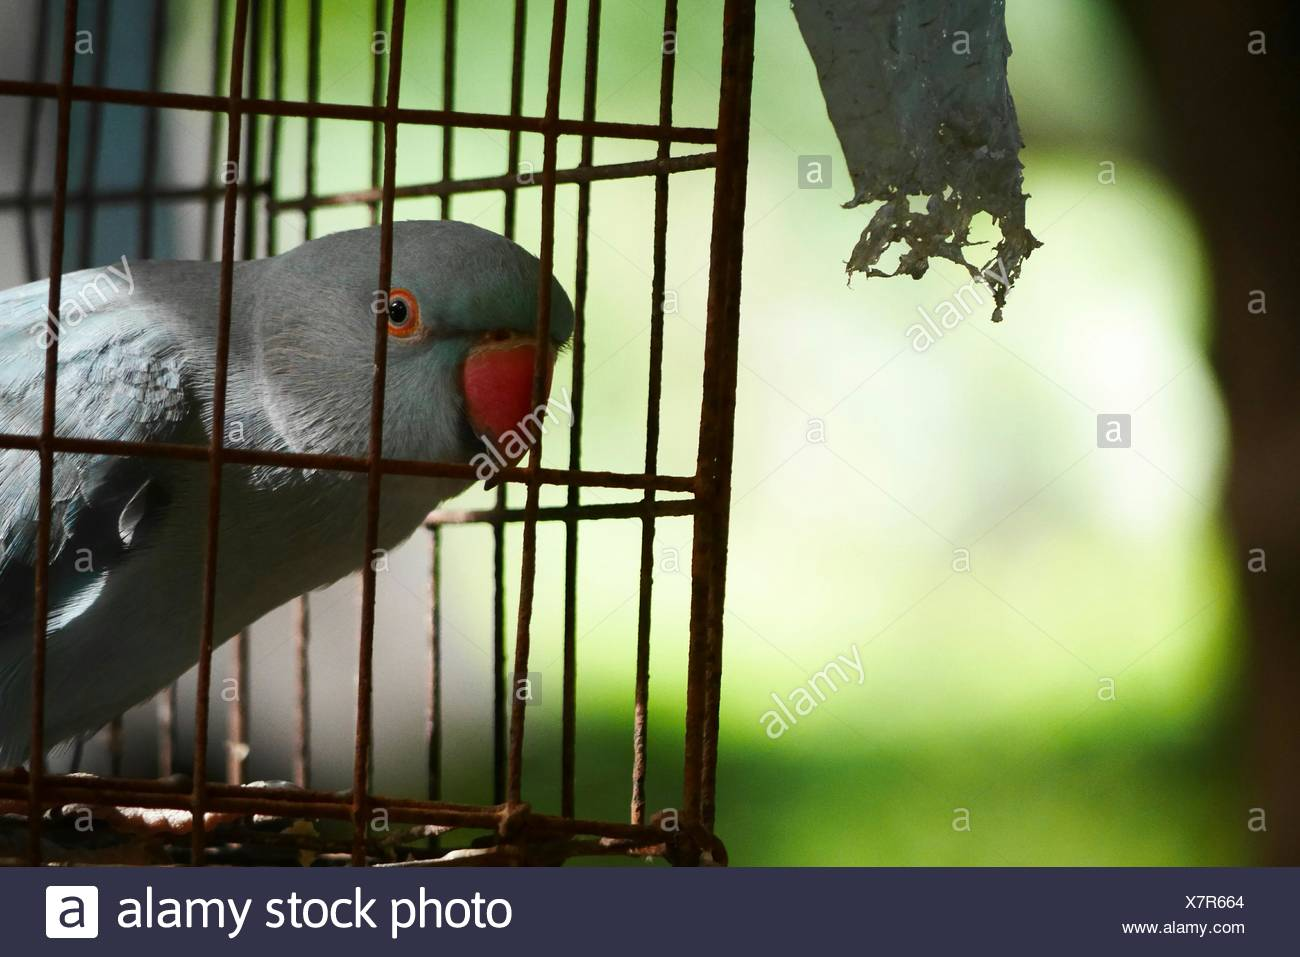 parrot in cage stock photos parrot in cage stock images alamy